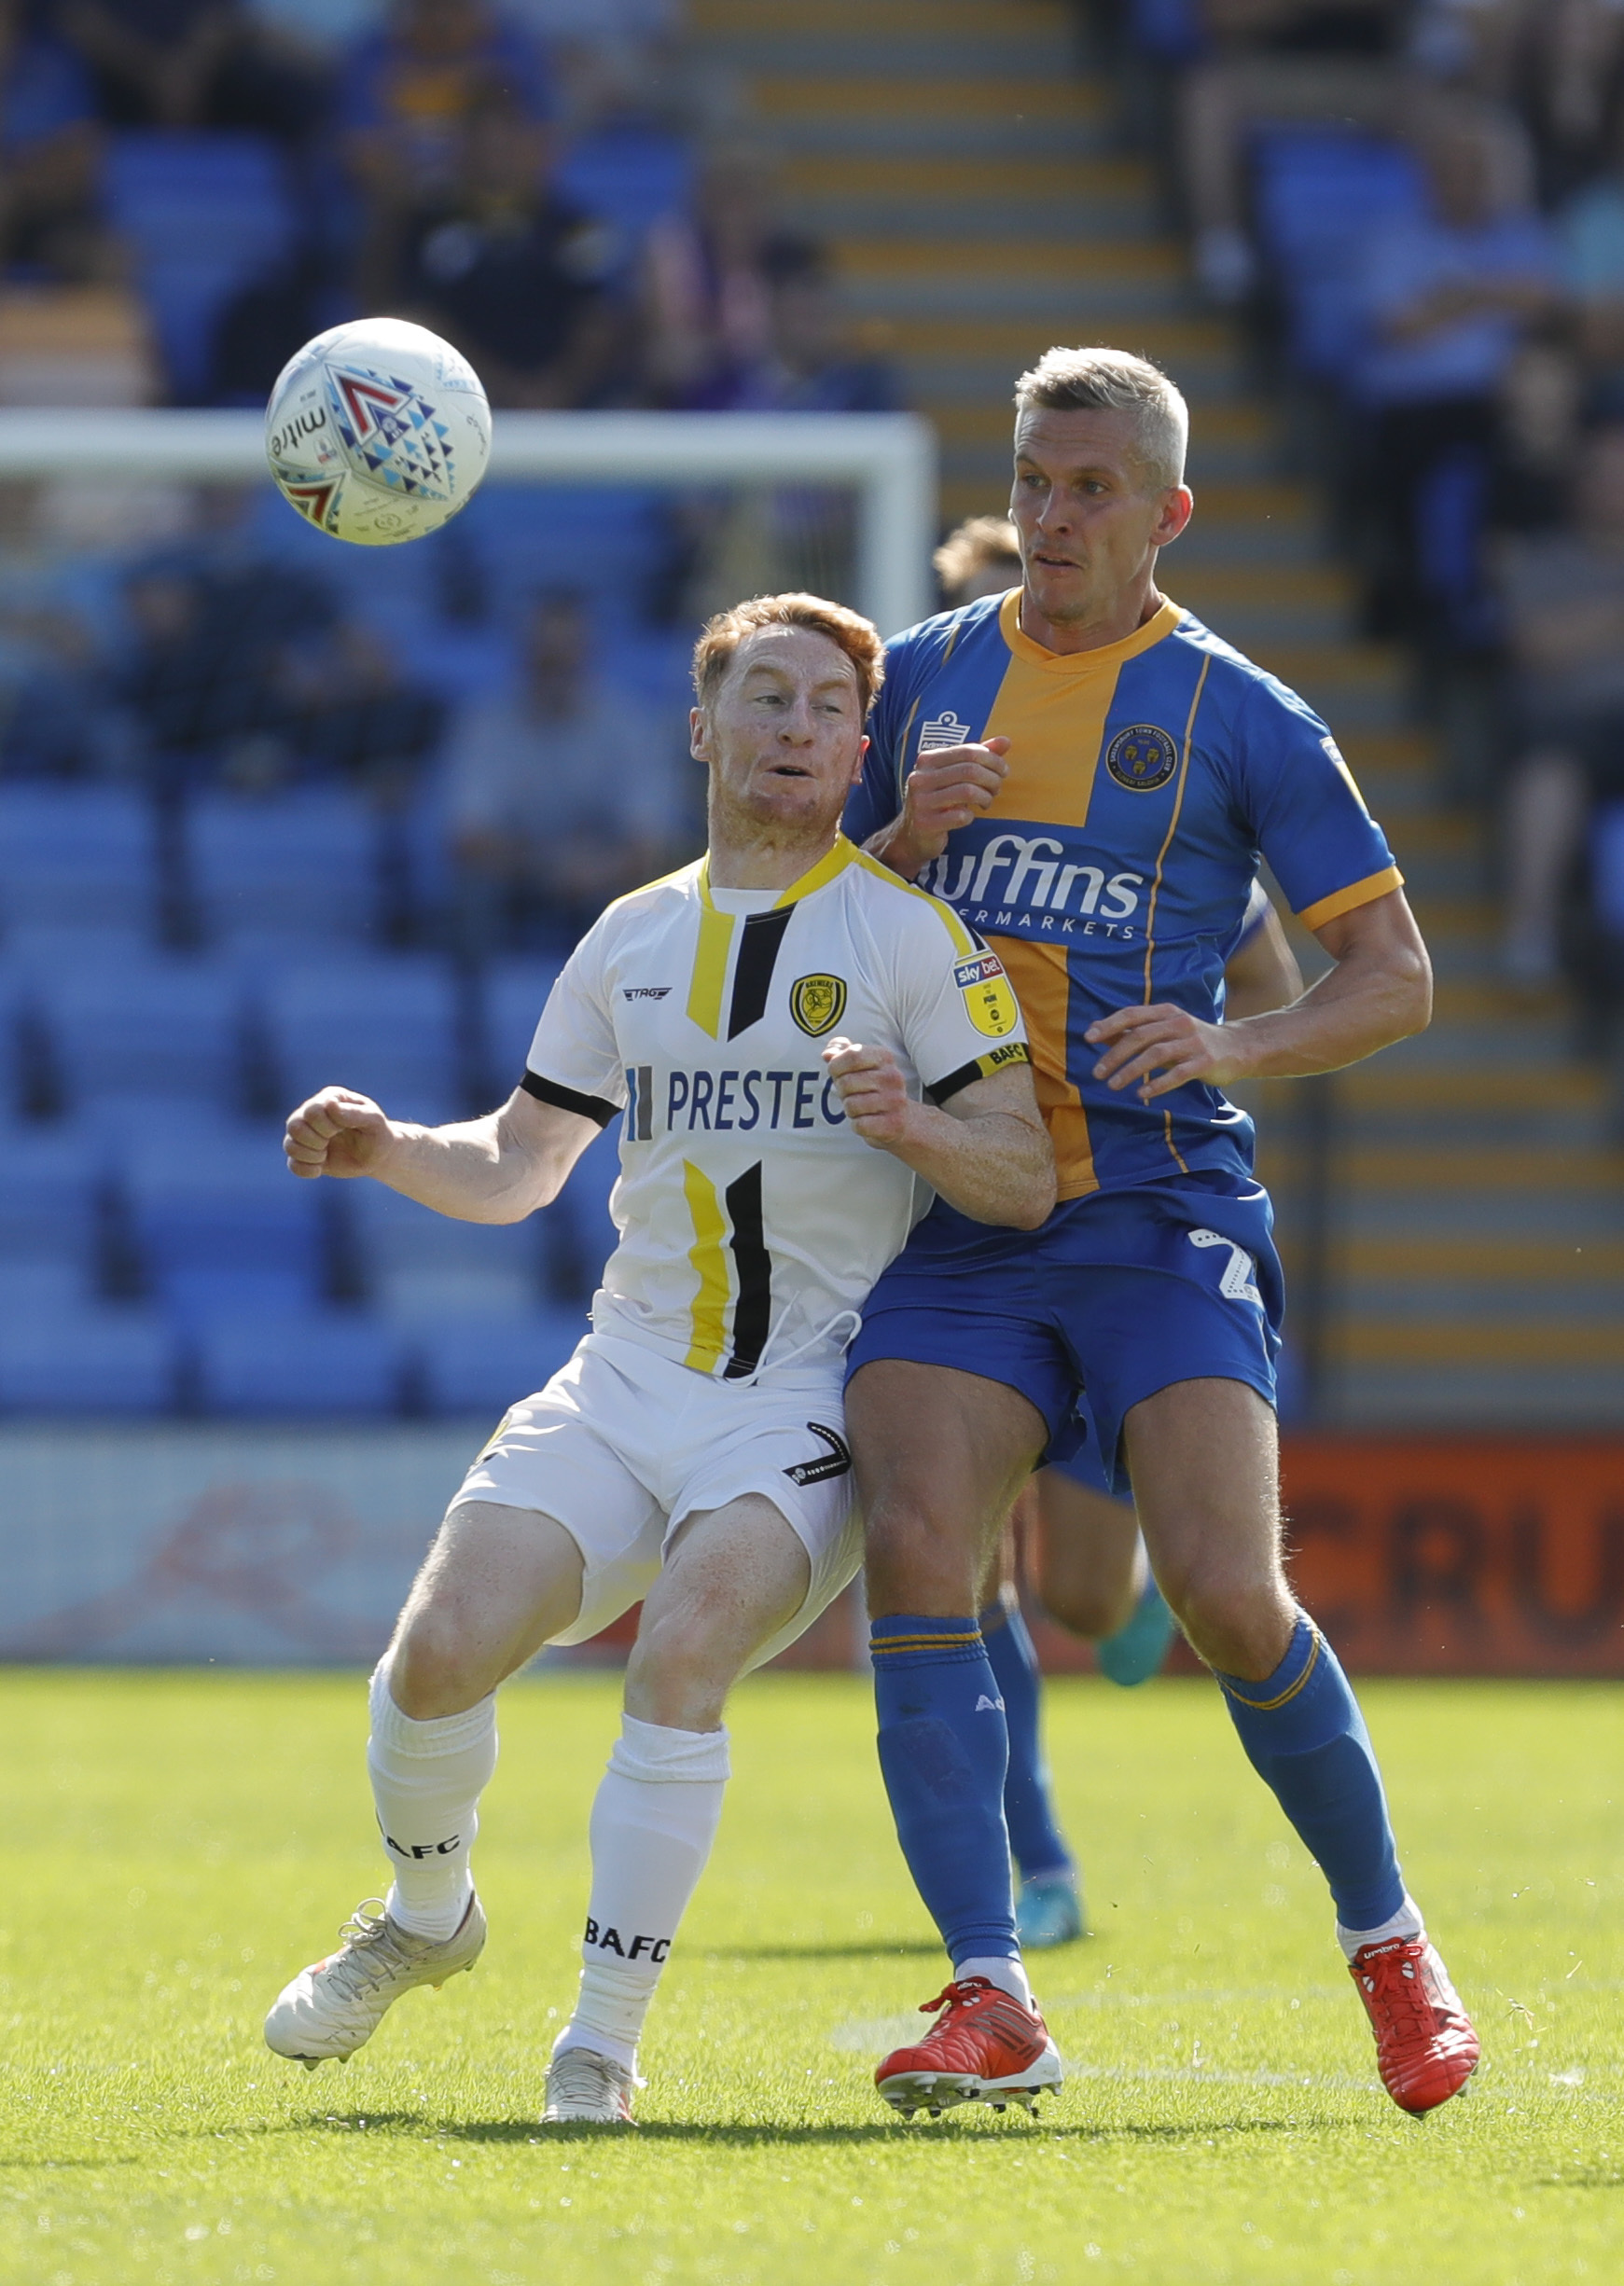 Shrewsbury Town 0 Burton Albion 0 - Report and pictures